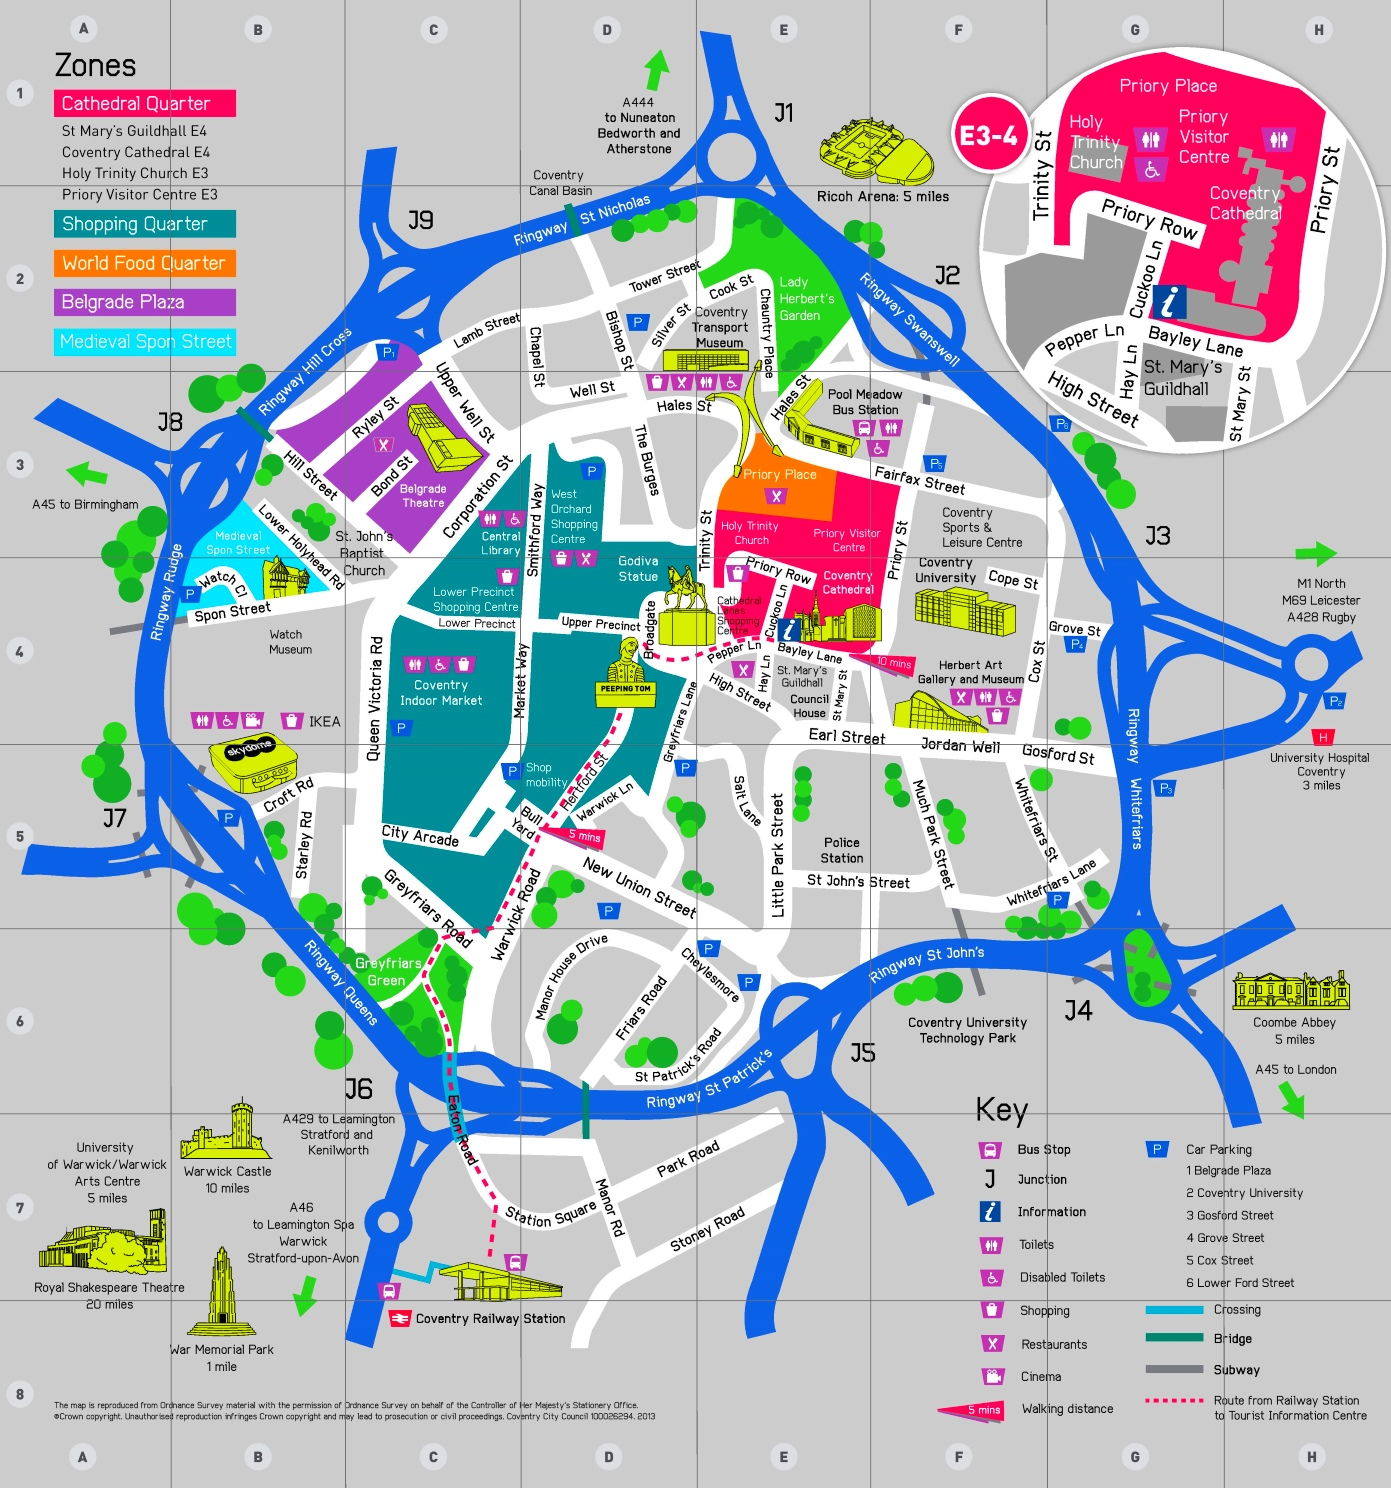 Map Of Coventry Coventry sightseeing map Map Of Coventry